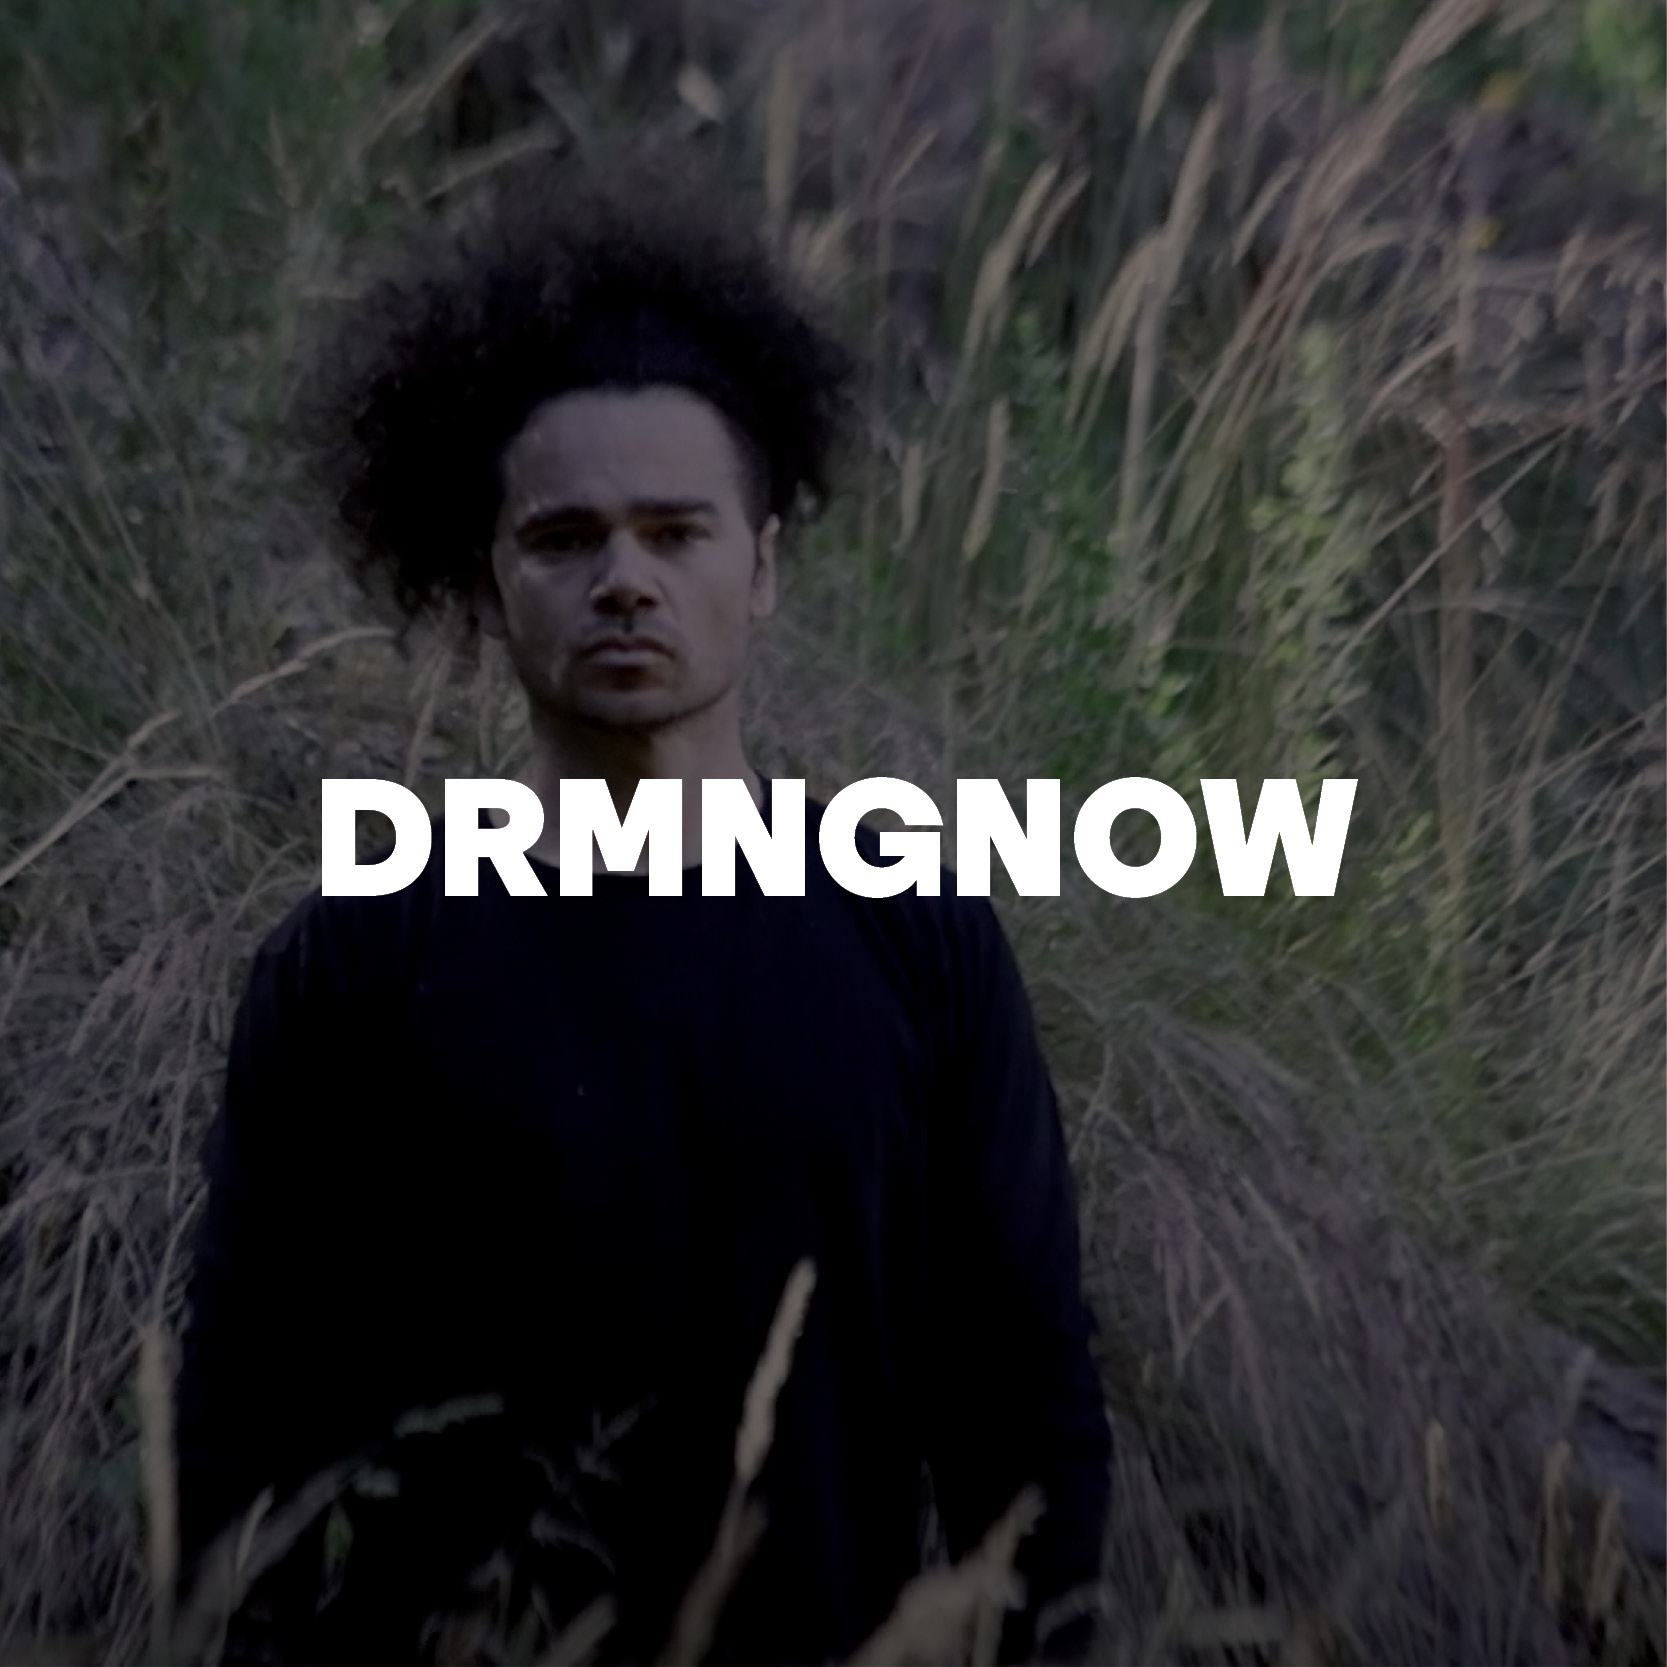 DRMNGNOW